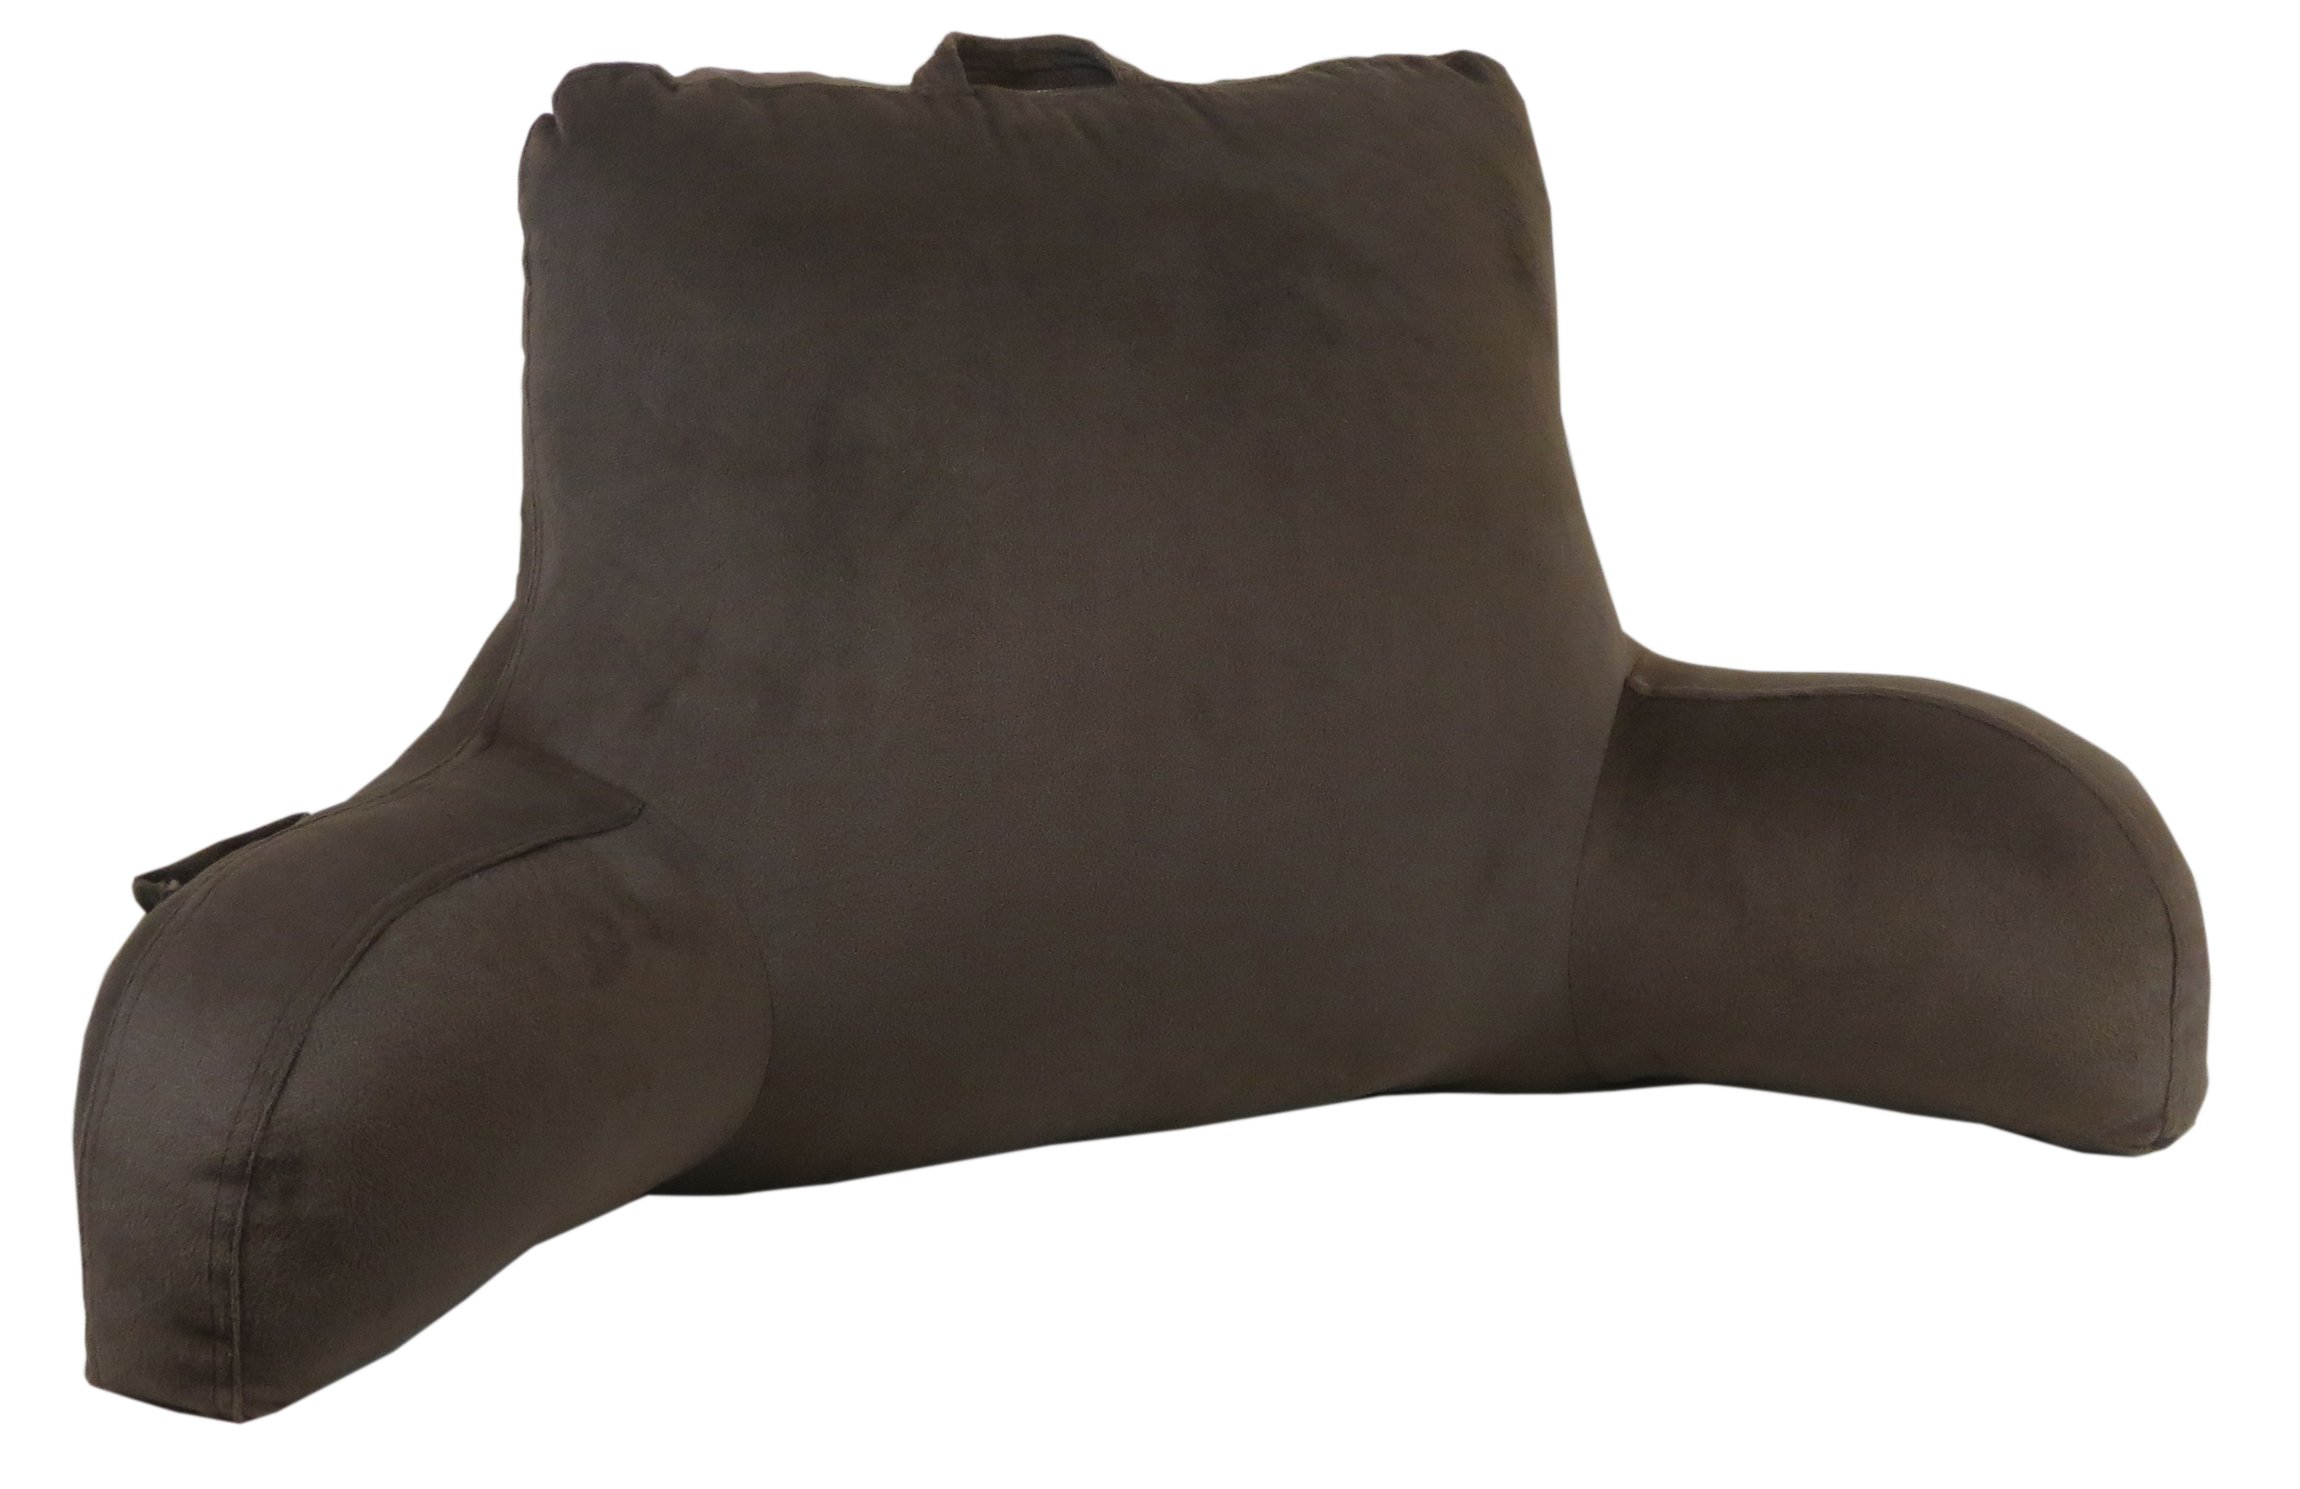 Velour Bed Rest Back Support Pillow (Brown)